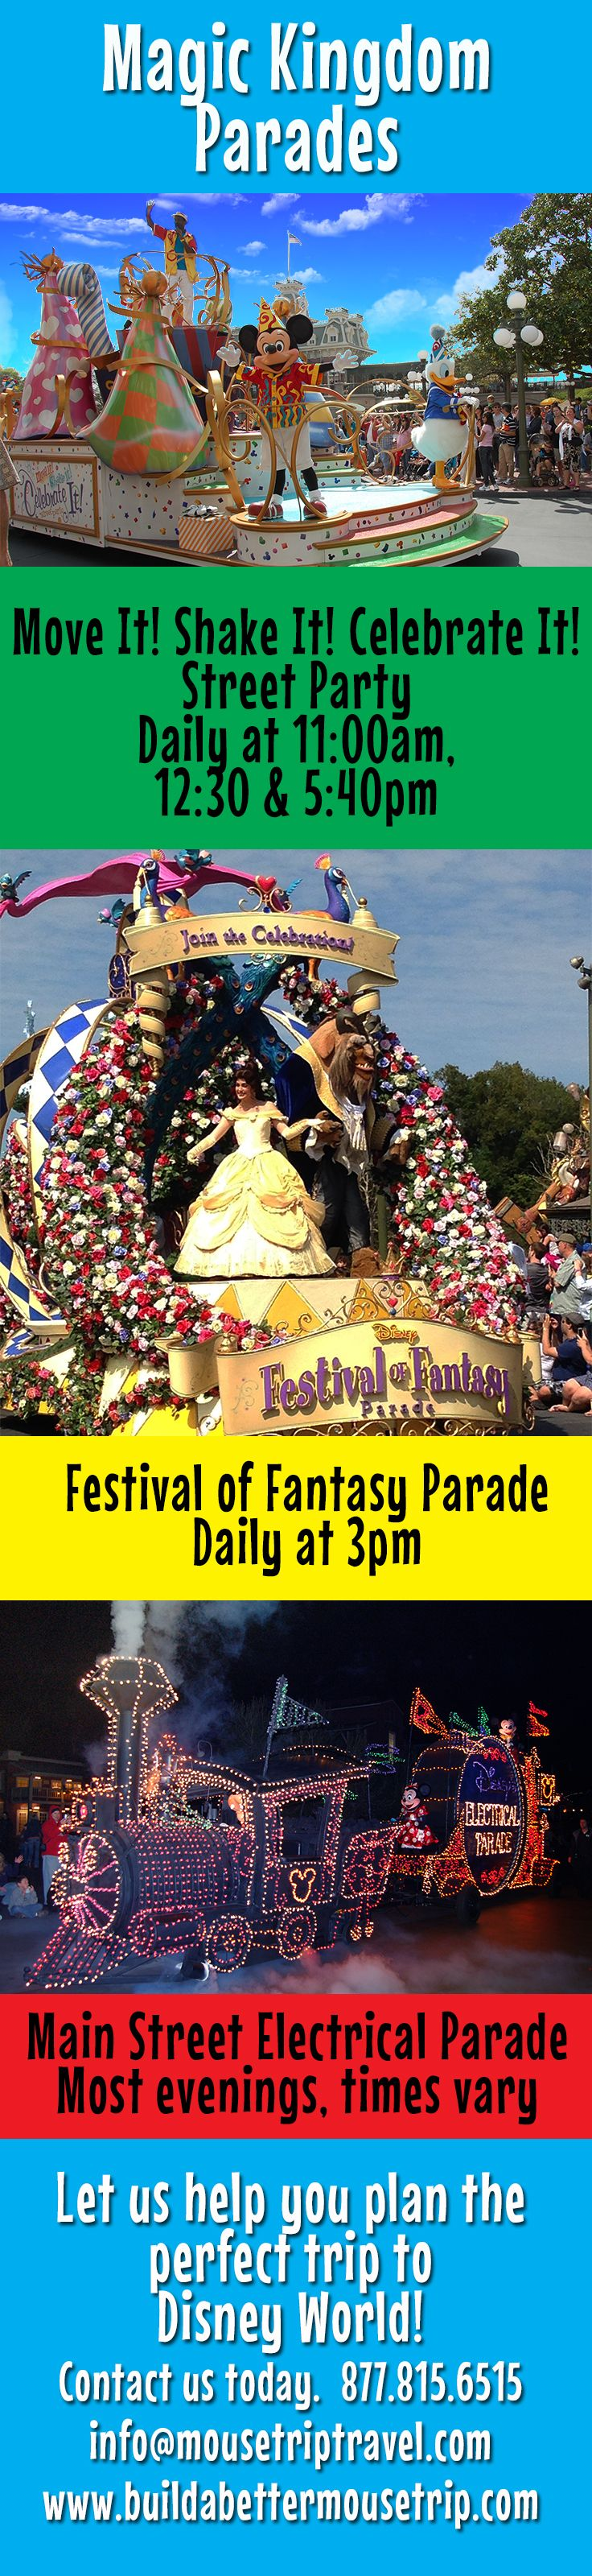 "Magic Kingdom Parade schedule - #Disney World.  Includes ""Move It!, Shake It! Celebrate It!"", Festival of Fantasy afternoon parade and the Main Street Electrical Parade.  Check Magic Kingdom Times Guide (found near the park maps) for exact schedule during your trip.   For Disney World ride closures, crowd warnings, and special event information, see: http://www.buildabettermousetrip.com/crowds-closures-special-events/ #FestivalofFantasy"